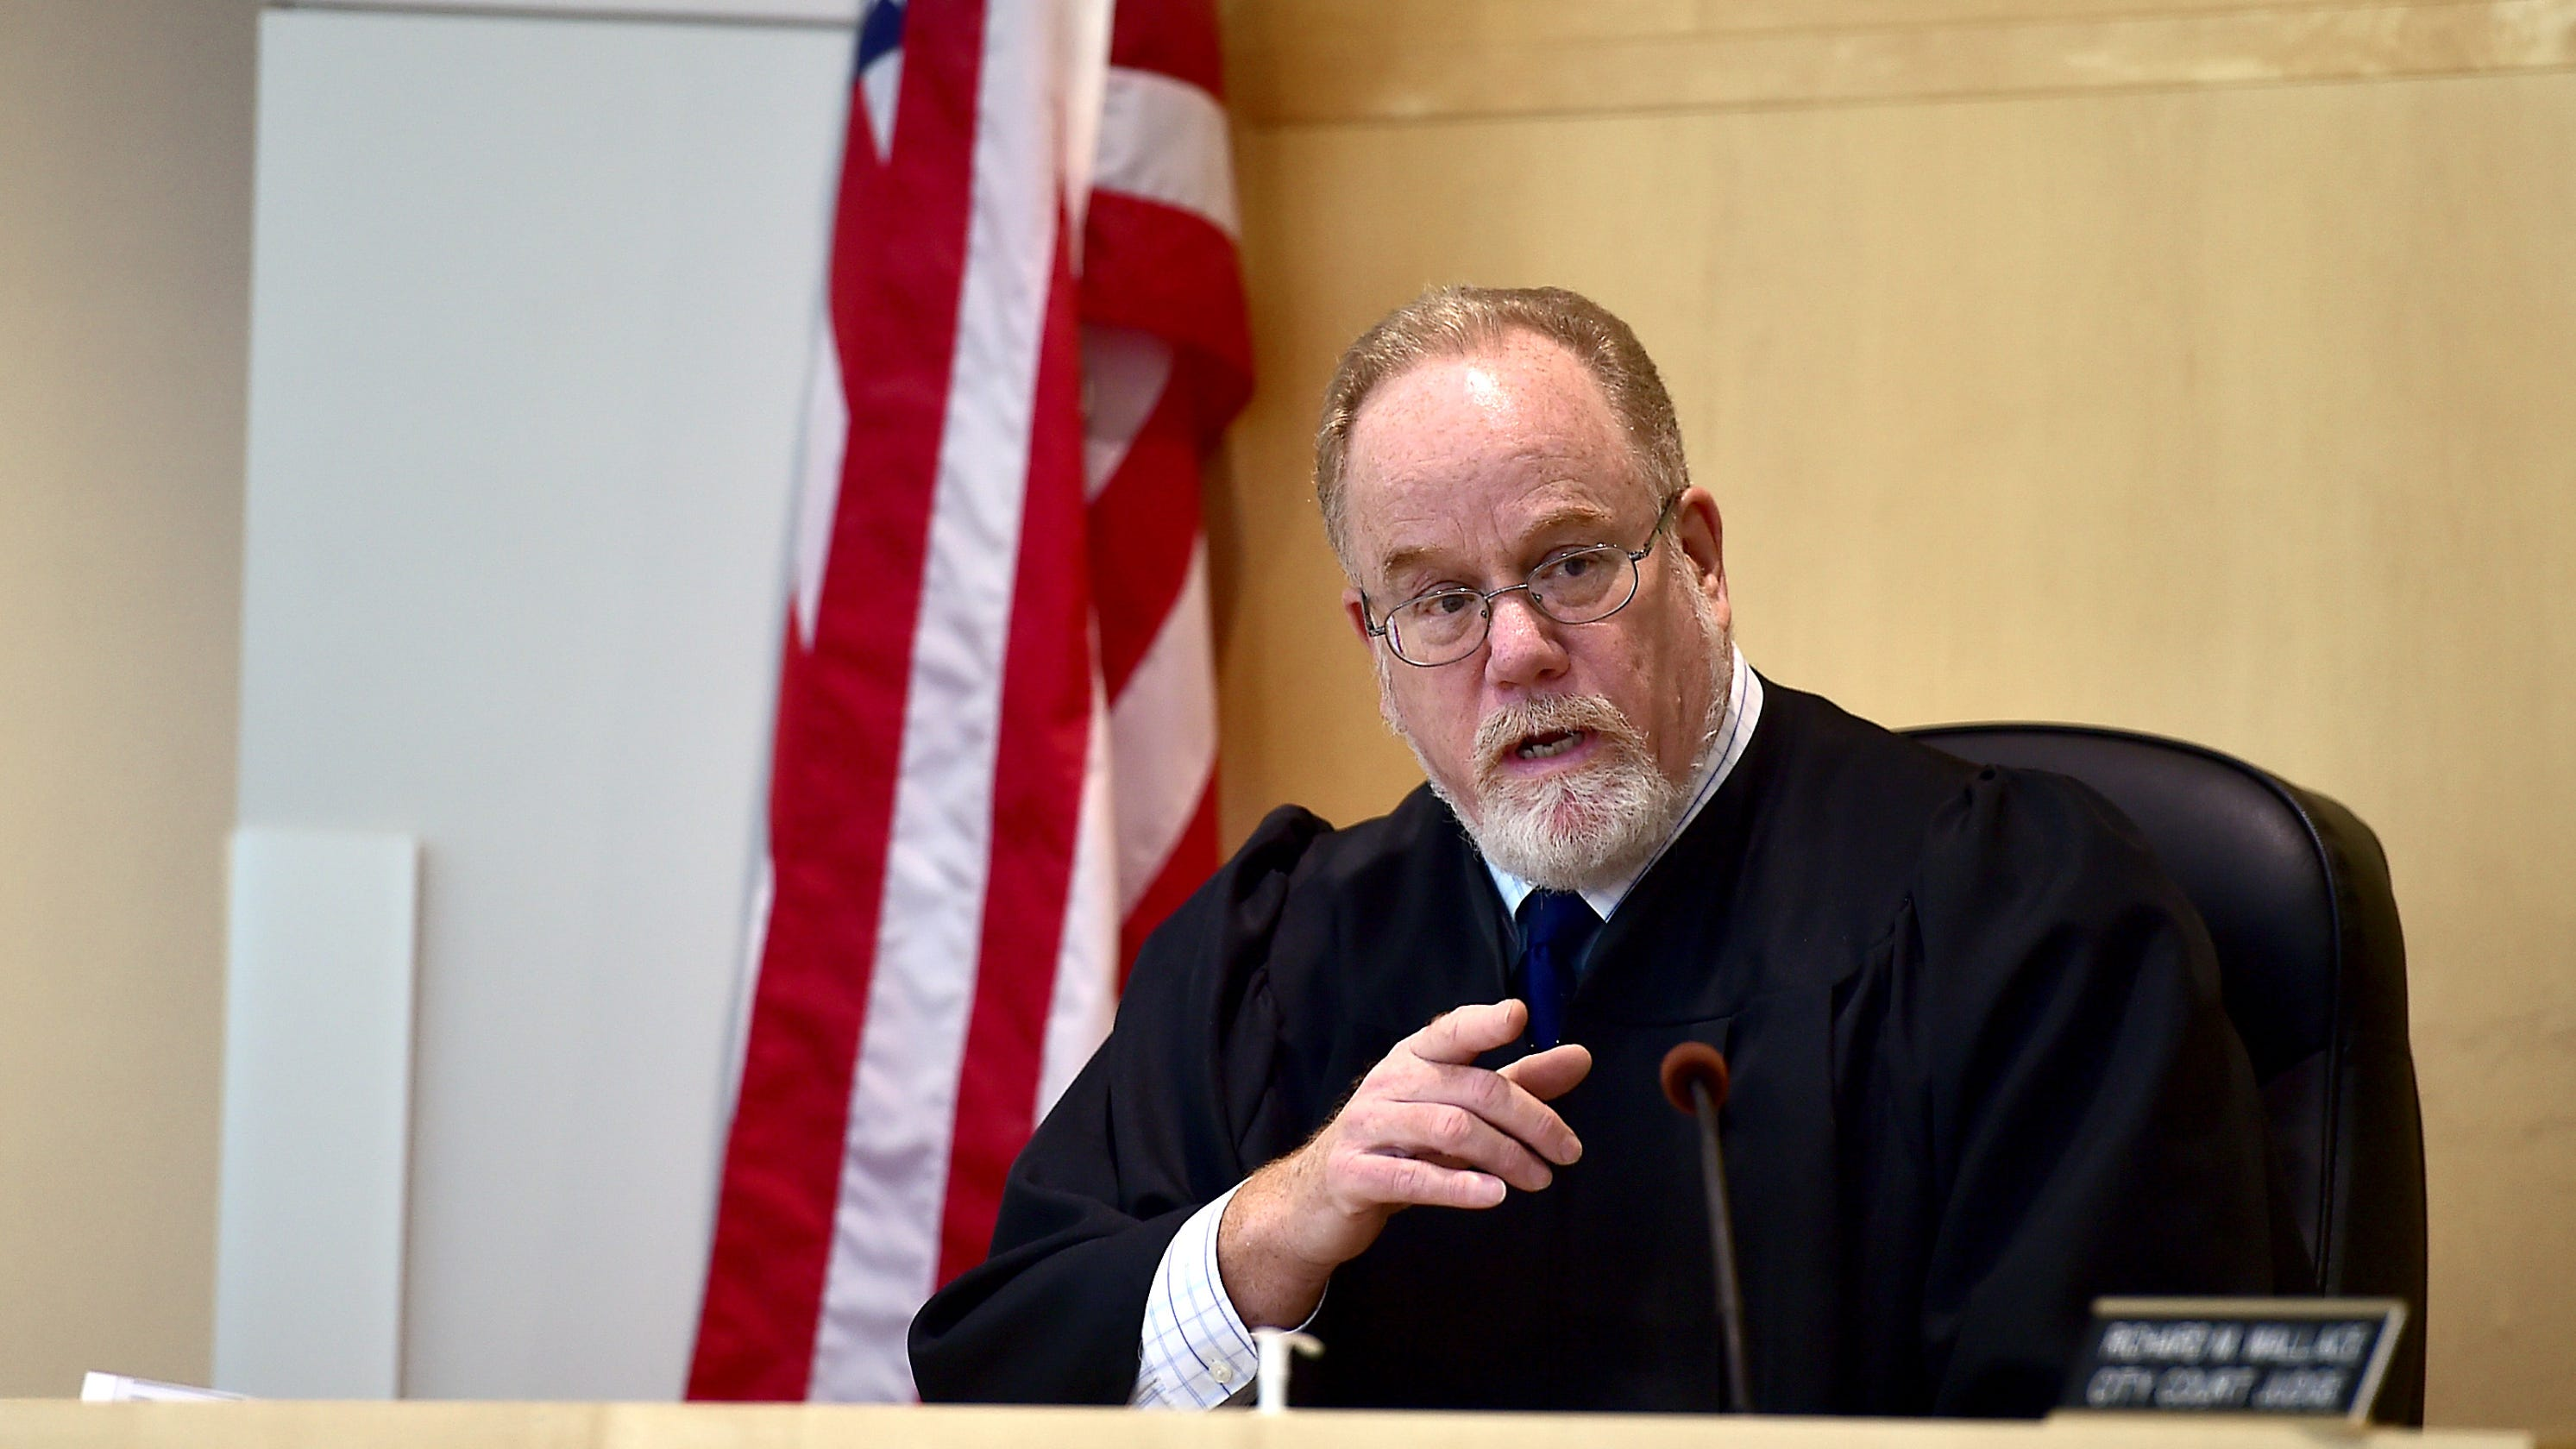 Small claims court serves individuals across New York